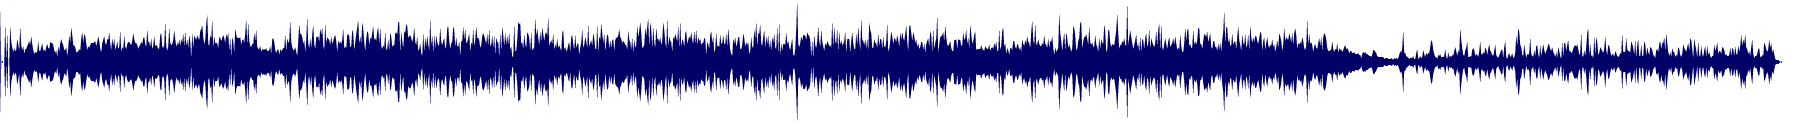 waveform of track #71451